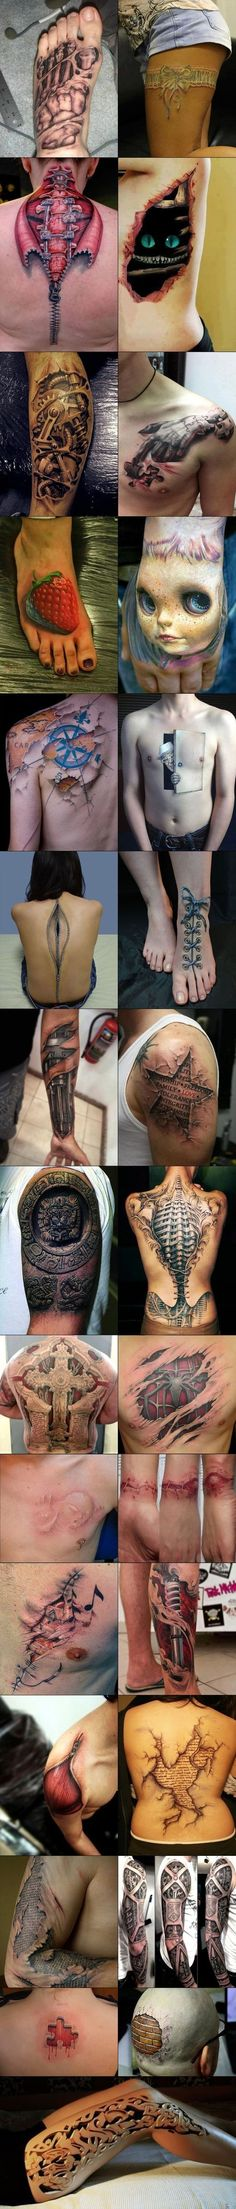 3D Tattoos... Holy shitballs!